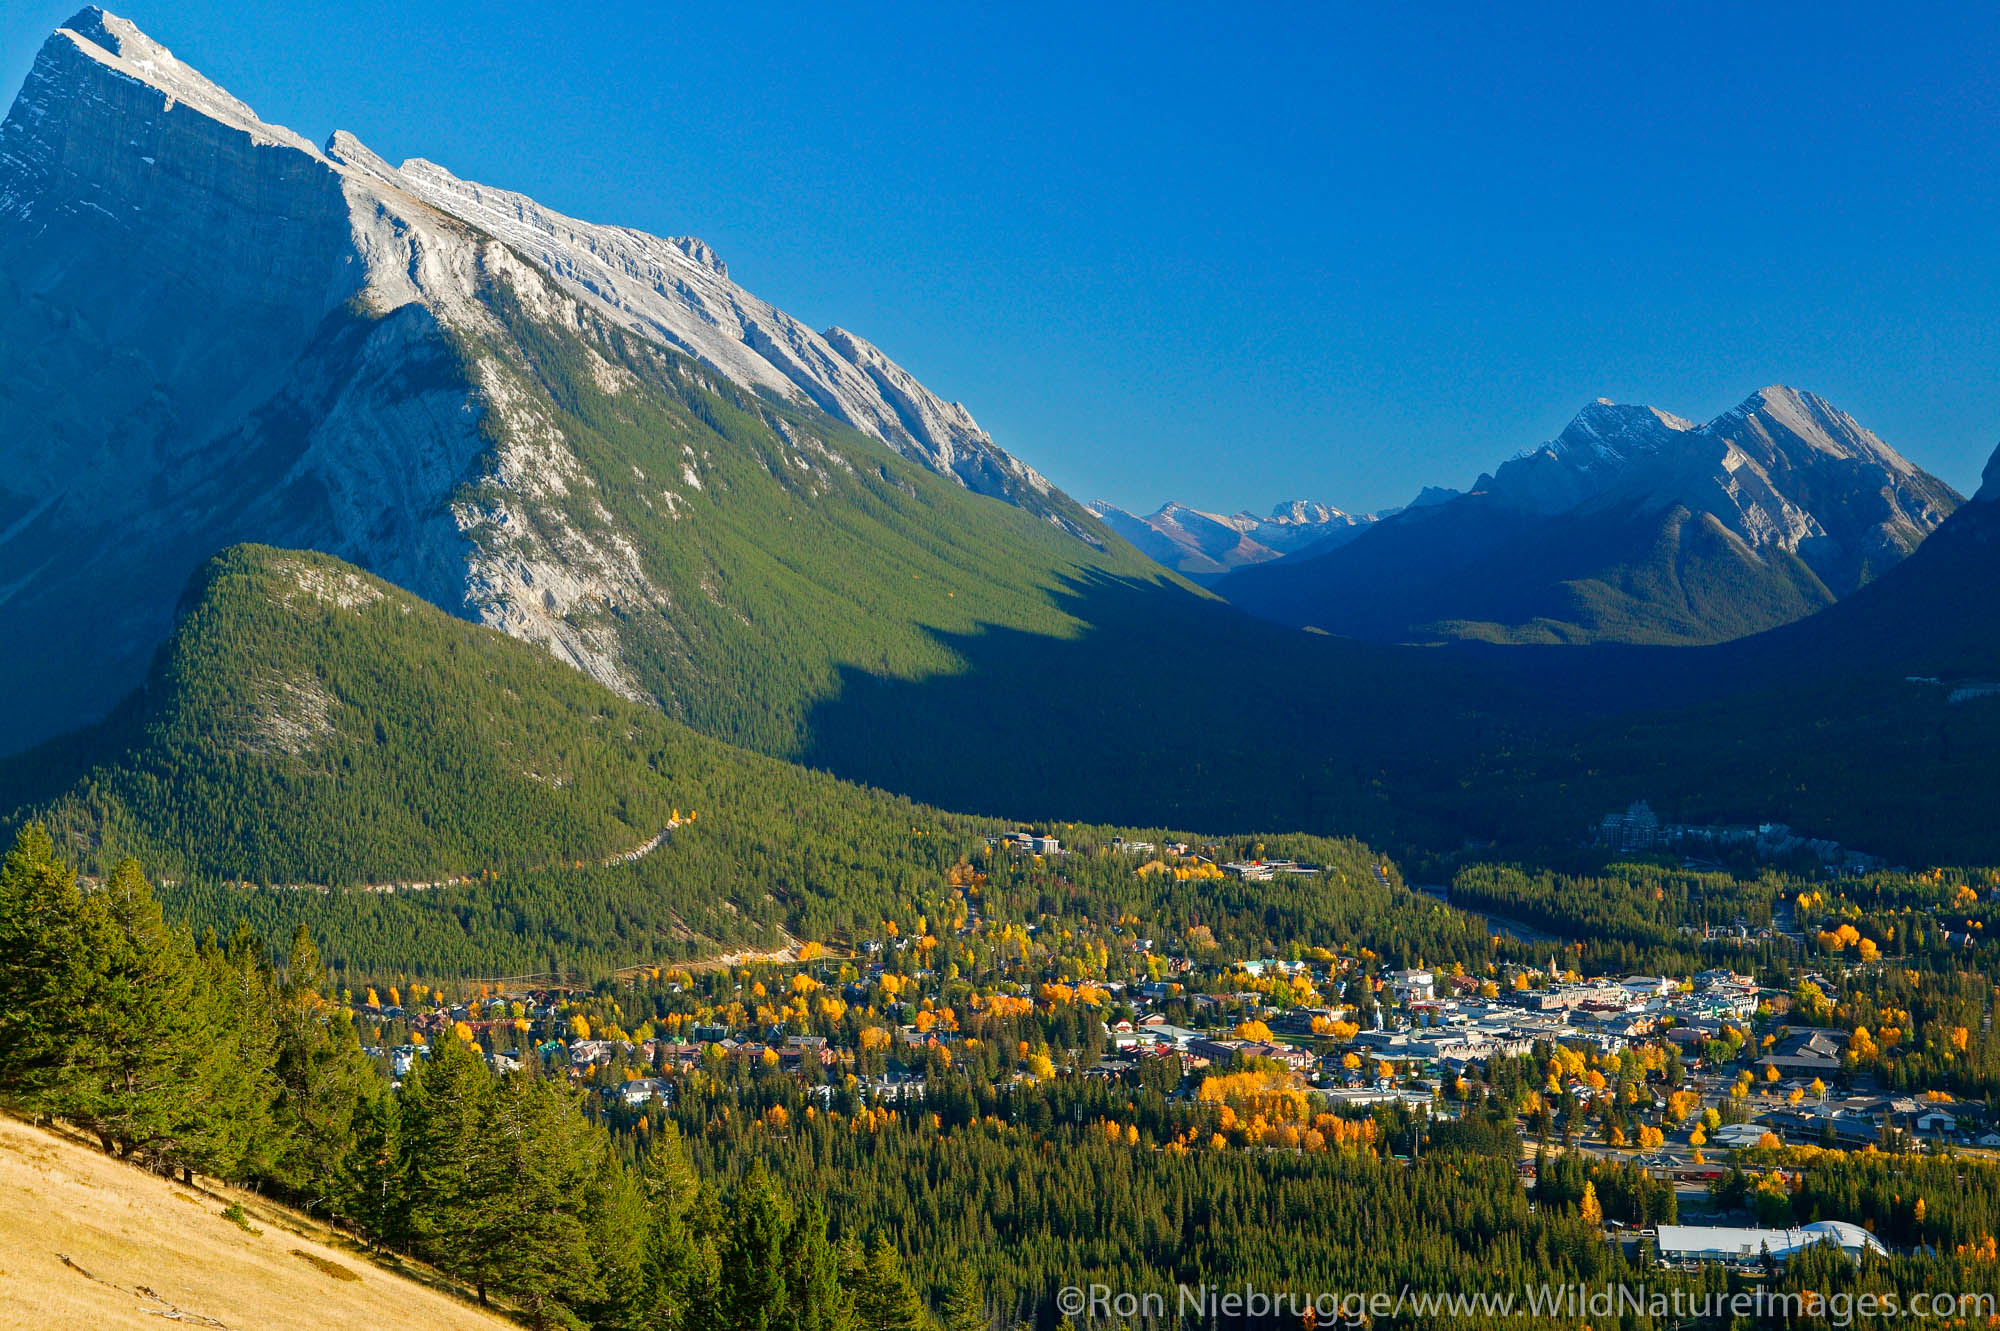 Town of Banff as viewed from Mount Norquay Road, Banff National Park, Alberta, Canada.